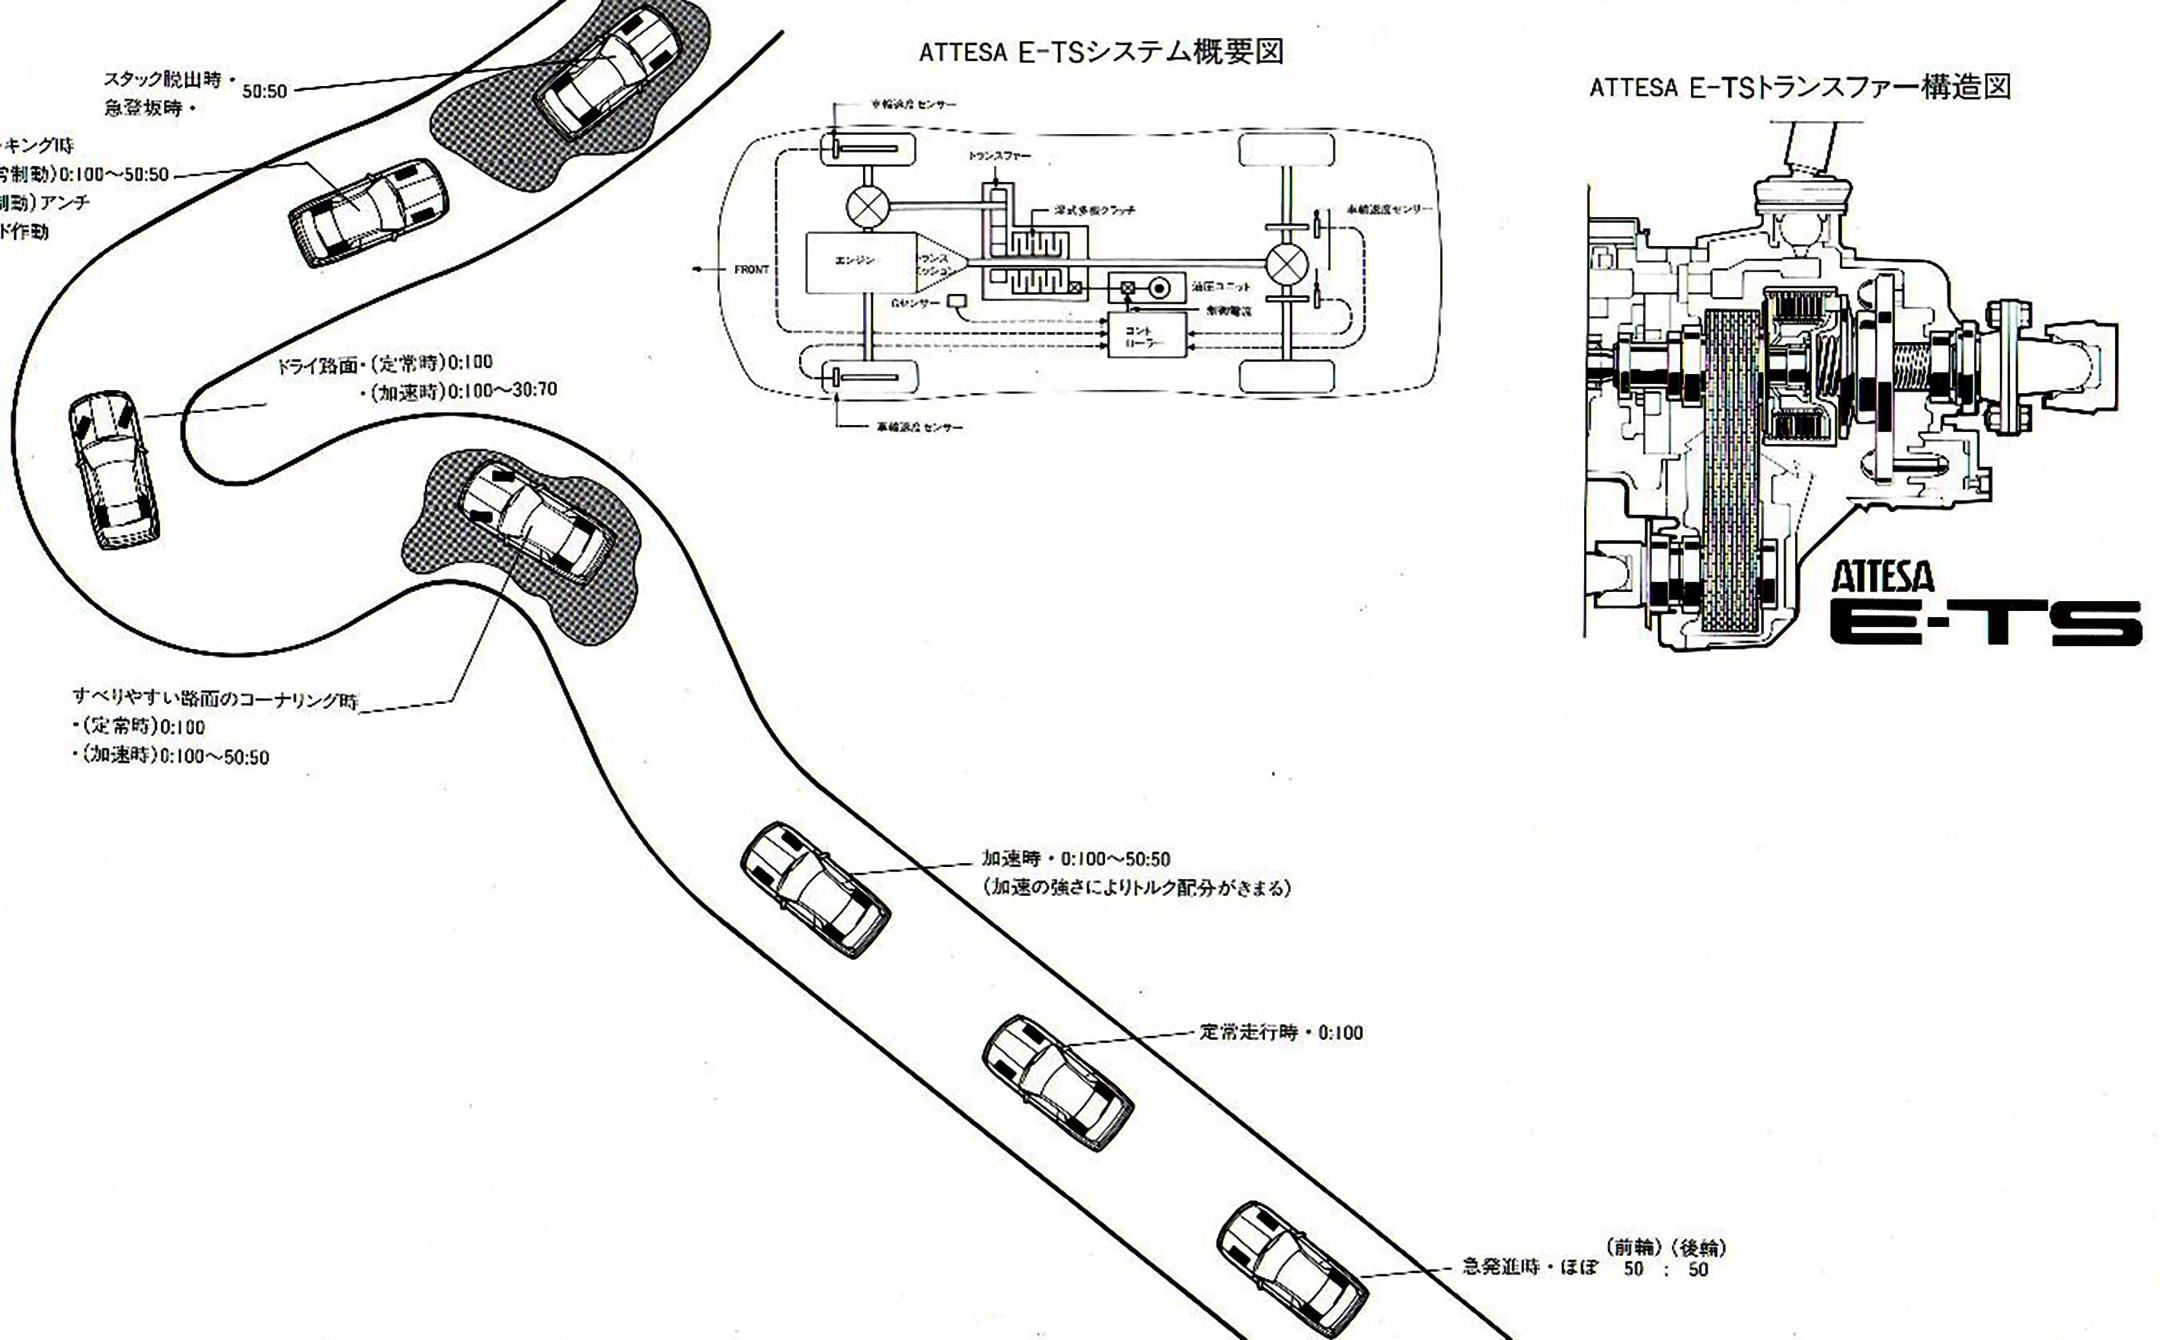 Nissan GT-R - 2010 - chassis / châssis - ATTESA E-TS - tech